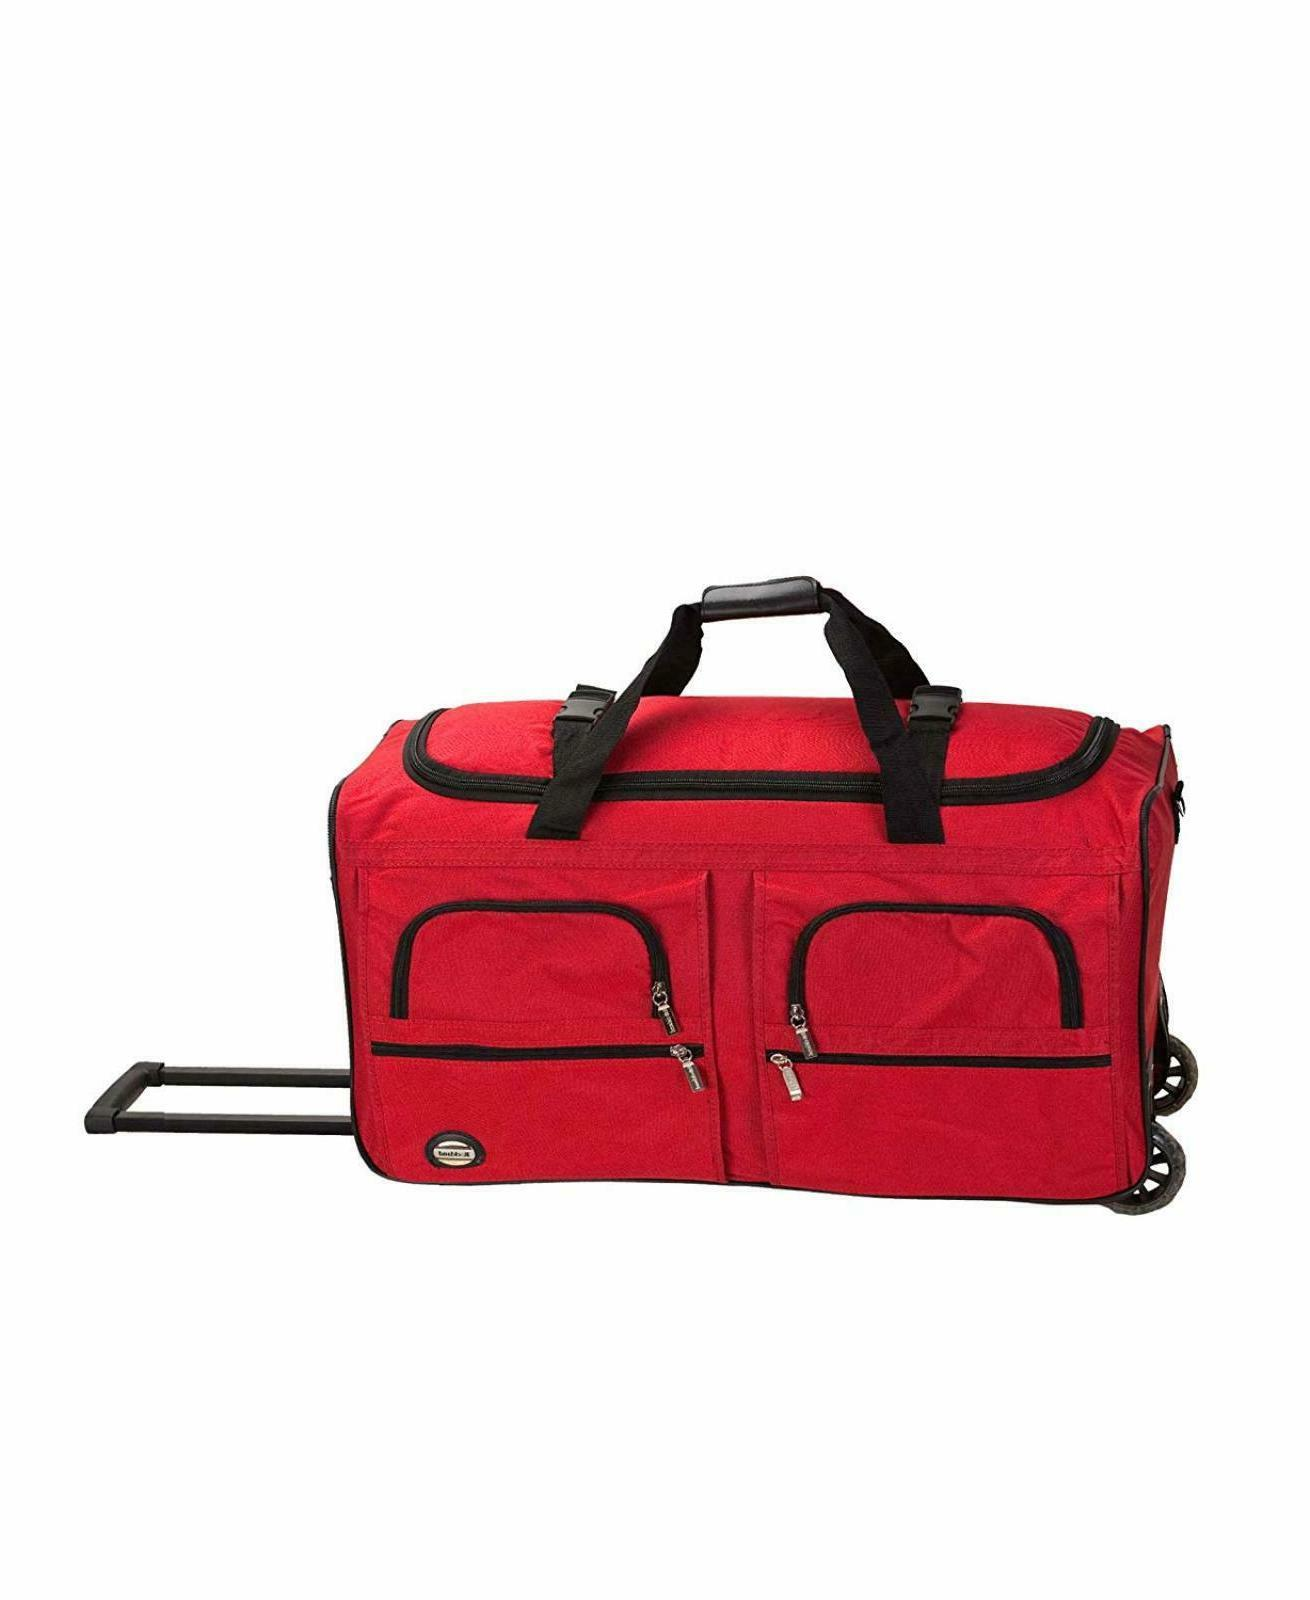 Rockland Luggage 36 Inch Rolling Duffle Bag Color Red Size O